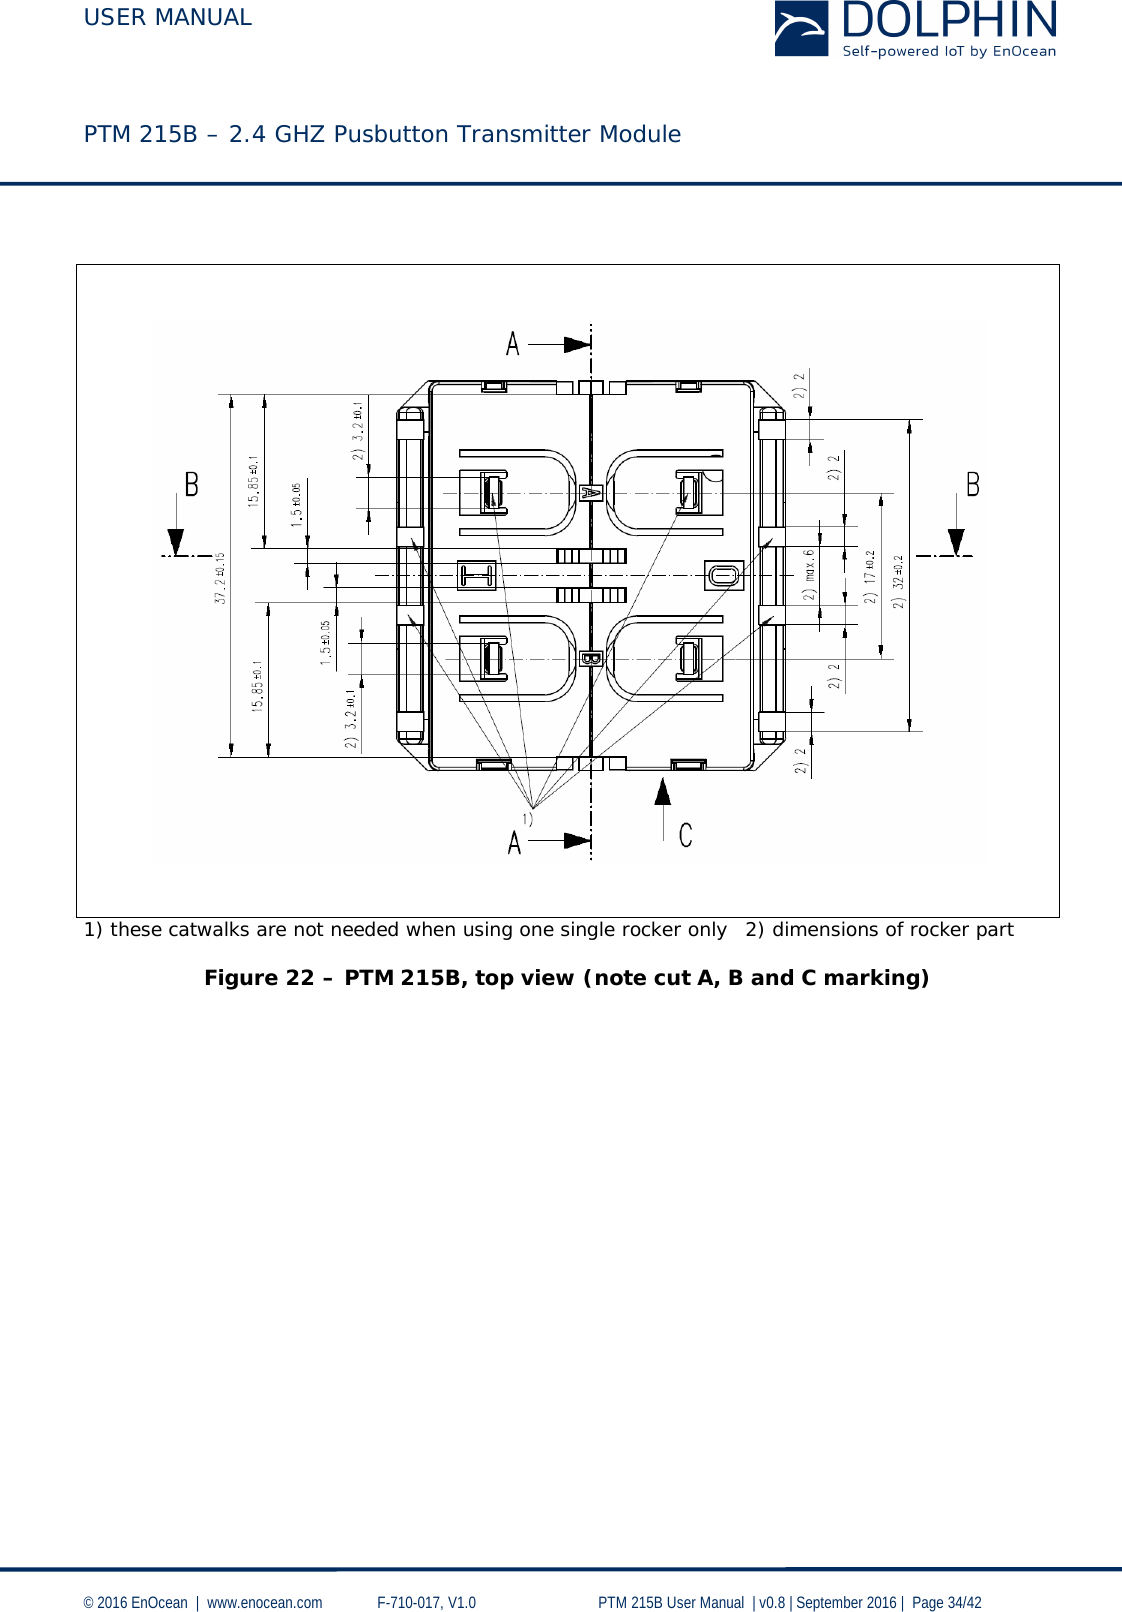 USER MANUAL    PTM 215B – 2.4 GHZ Pusbutton Transmitter Module  © 2016 EnOcean     www.enocean.com   F-710-017, V1.0        PTM 215B User Manual    v0.8   September 2016    Page 34/42      1) these catwalks are not needed when using one single rocker only 2) dimensions of rocker part  Figure 22 – PTM 215B, top view (note cut A, B and C marking)